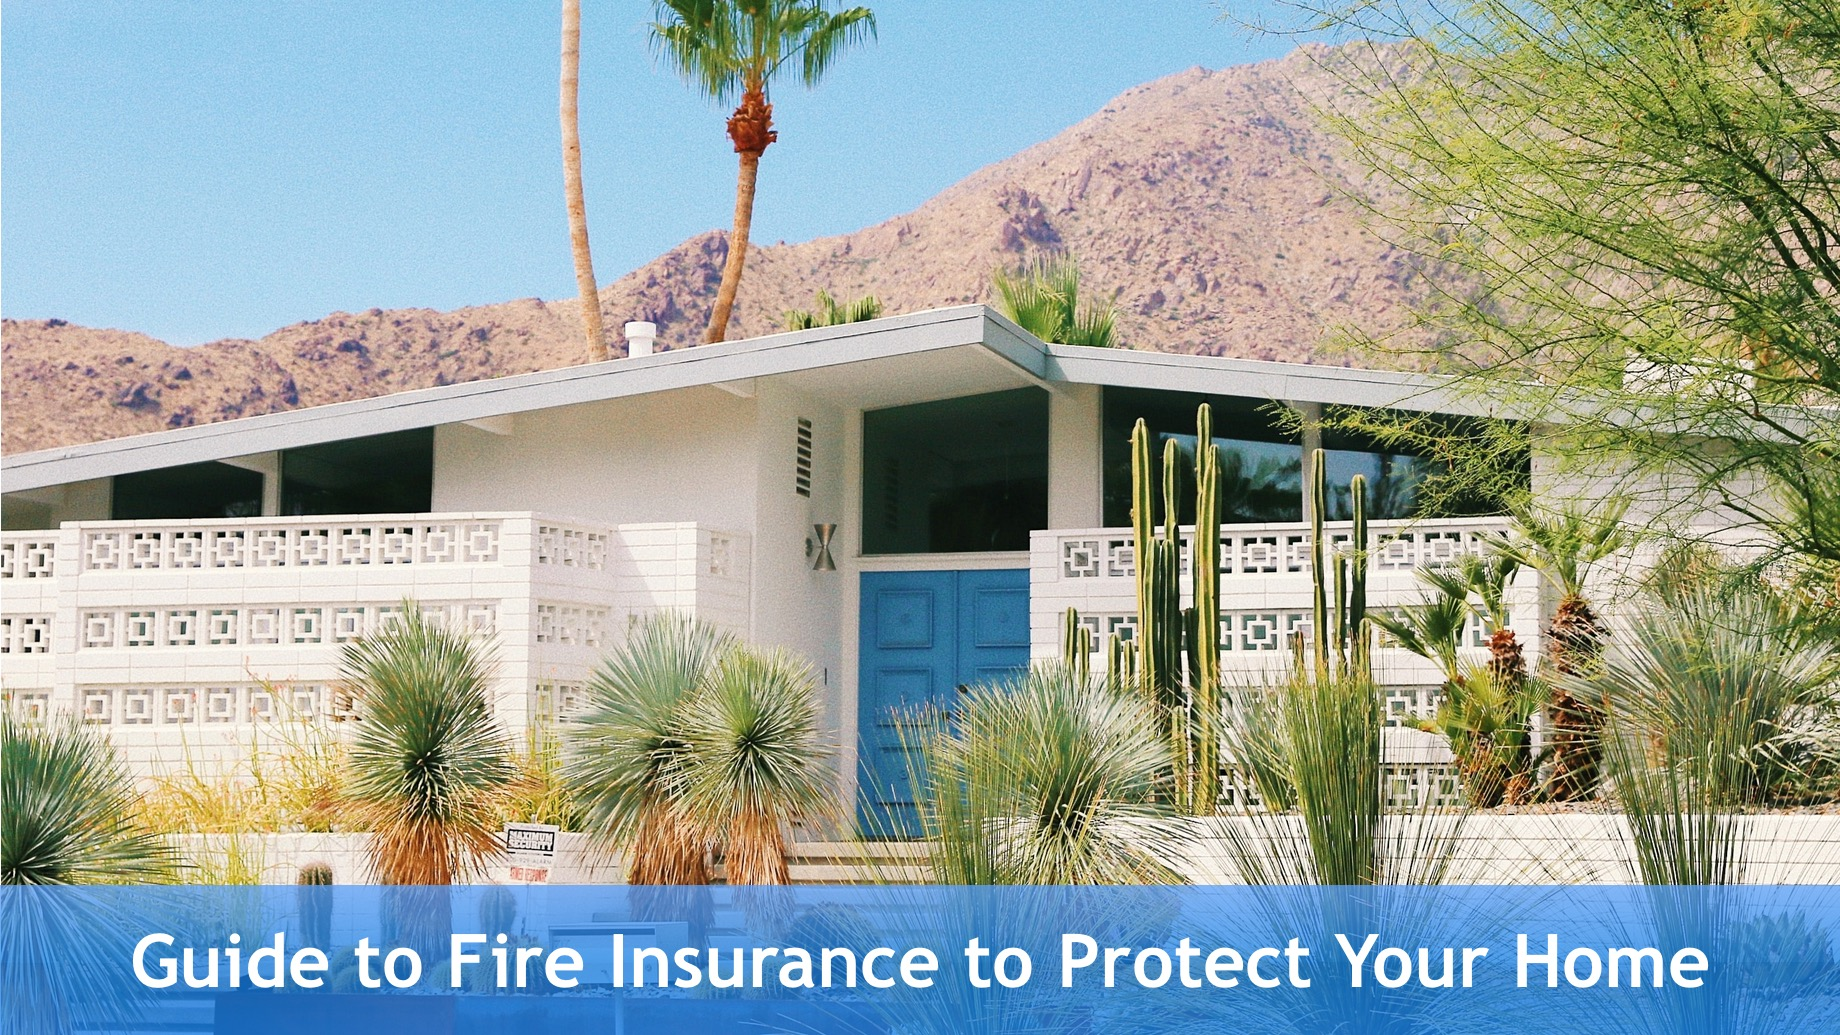 Guide to Fire Insurance to Protect Your Home